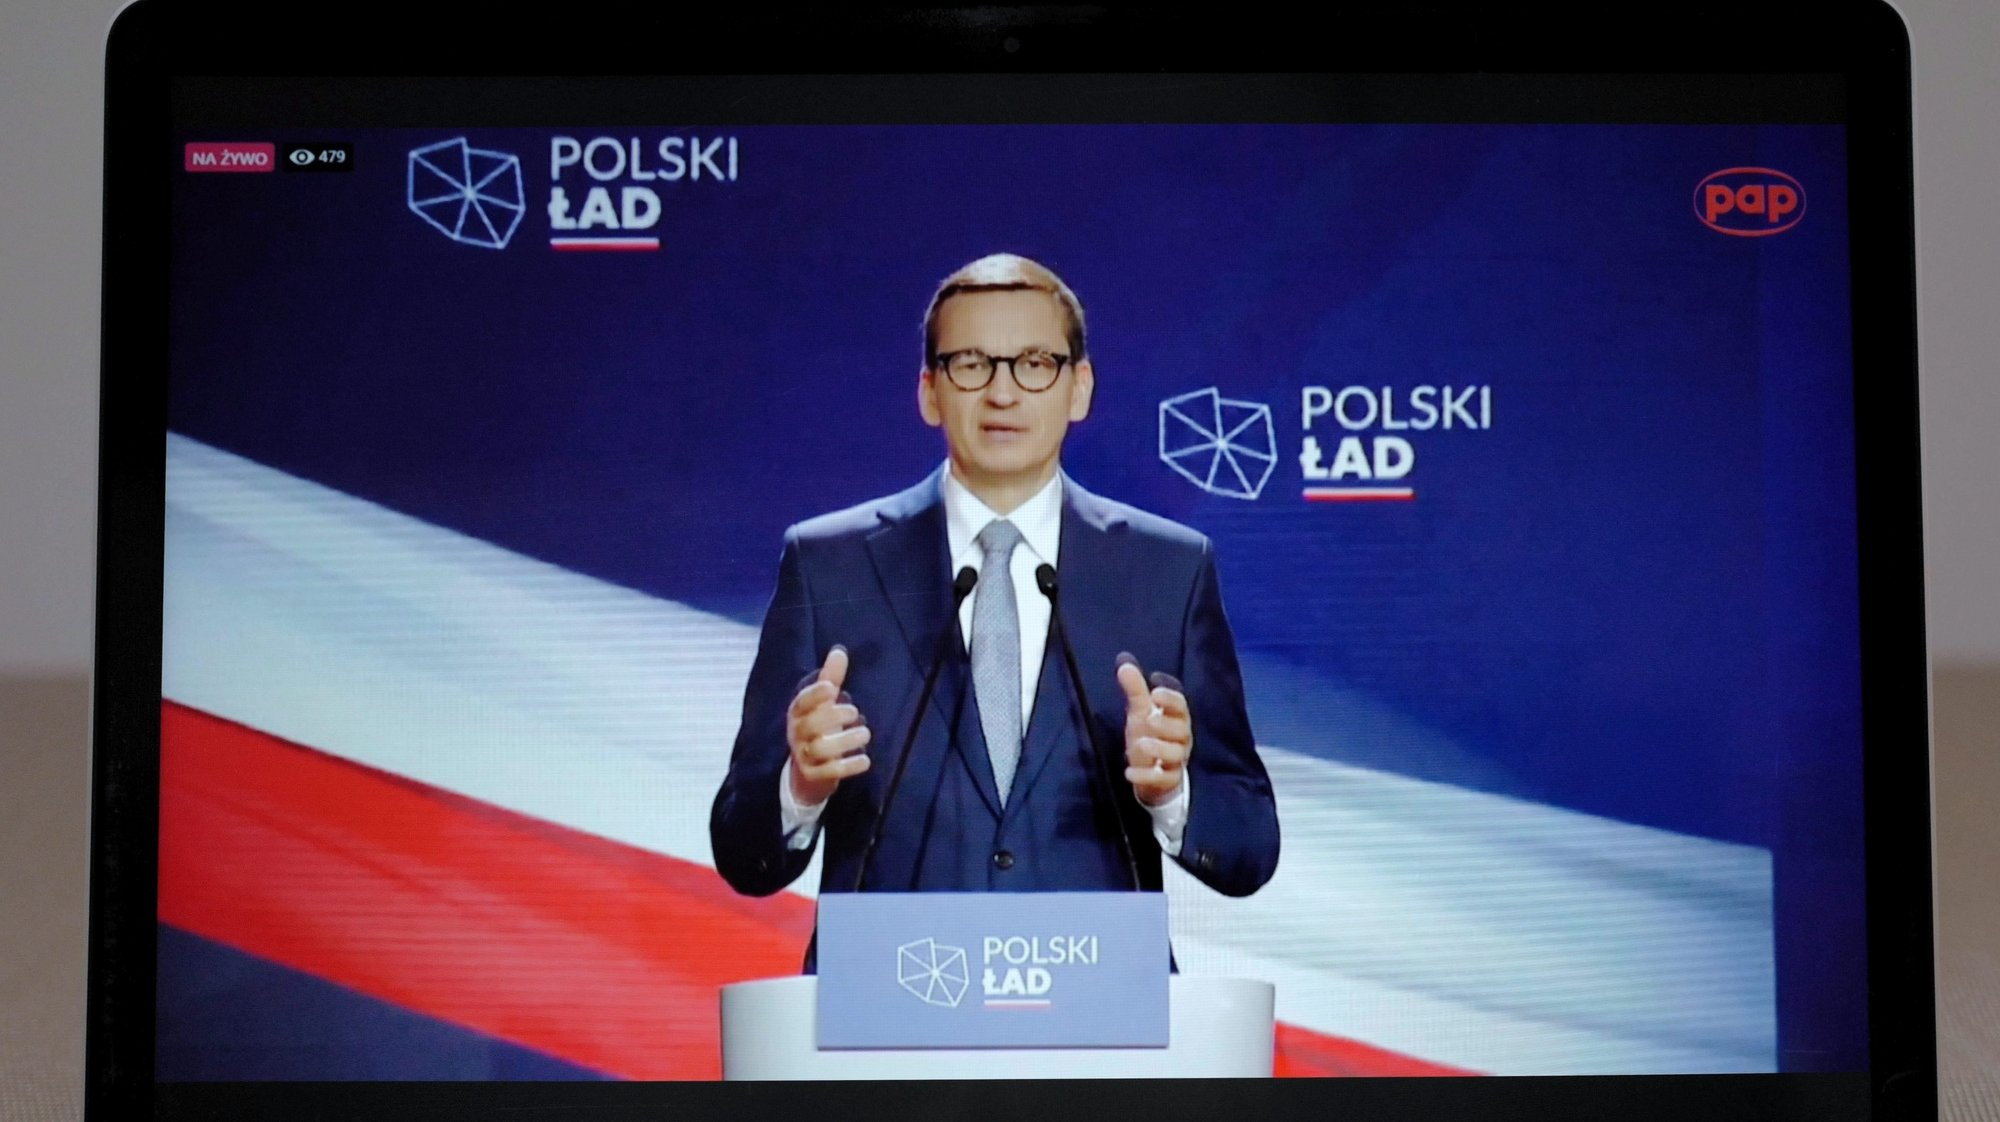 epa09242809 Polish Prime Minister Mateusz Morawiecki presents 10 key points of the government's Polish New Deal plan to revive the national economy after the Covid-19 pandemic during a speech watched on a screen in Warsaw, Poland, 02 June 2021. The plan, which envisages major investment in public infrastructure along with overhauls of the tax and healthcare systems, was made public last month but Mateusz Morawiecki added more details during a presentation on 02 June 2021.  EPA/Mateusz Marek POLAND OUT